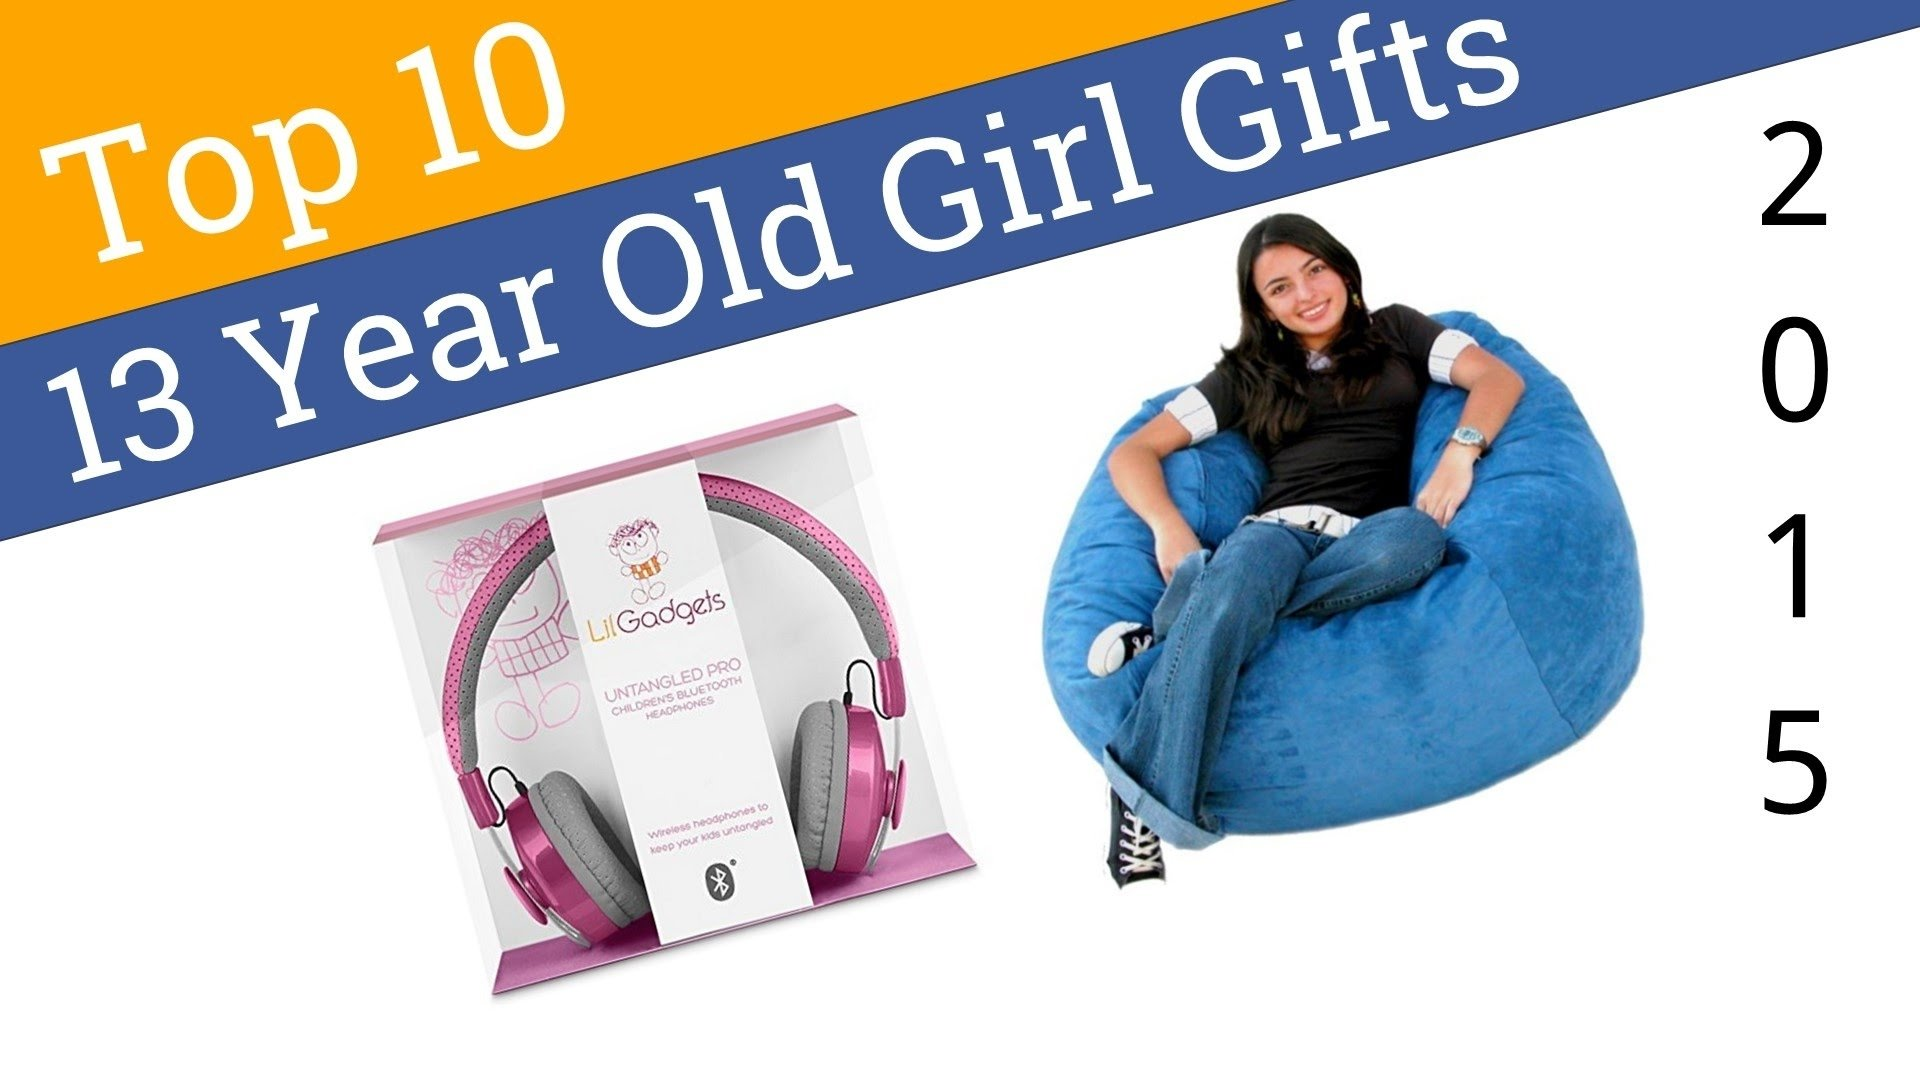 10 Spectacular 13 Year Old Girl Gift Ideas 10 best 13 year old girl gifts 2015 youtube 1